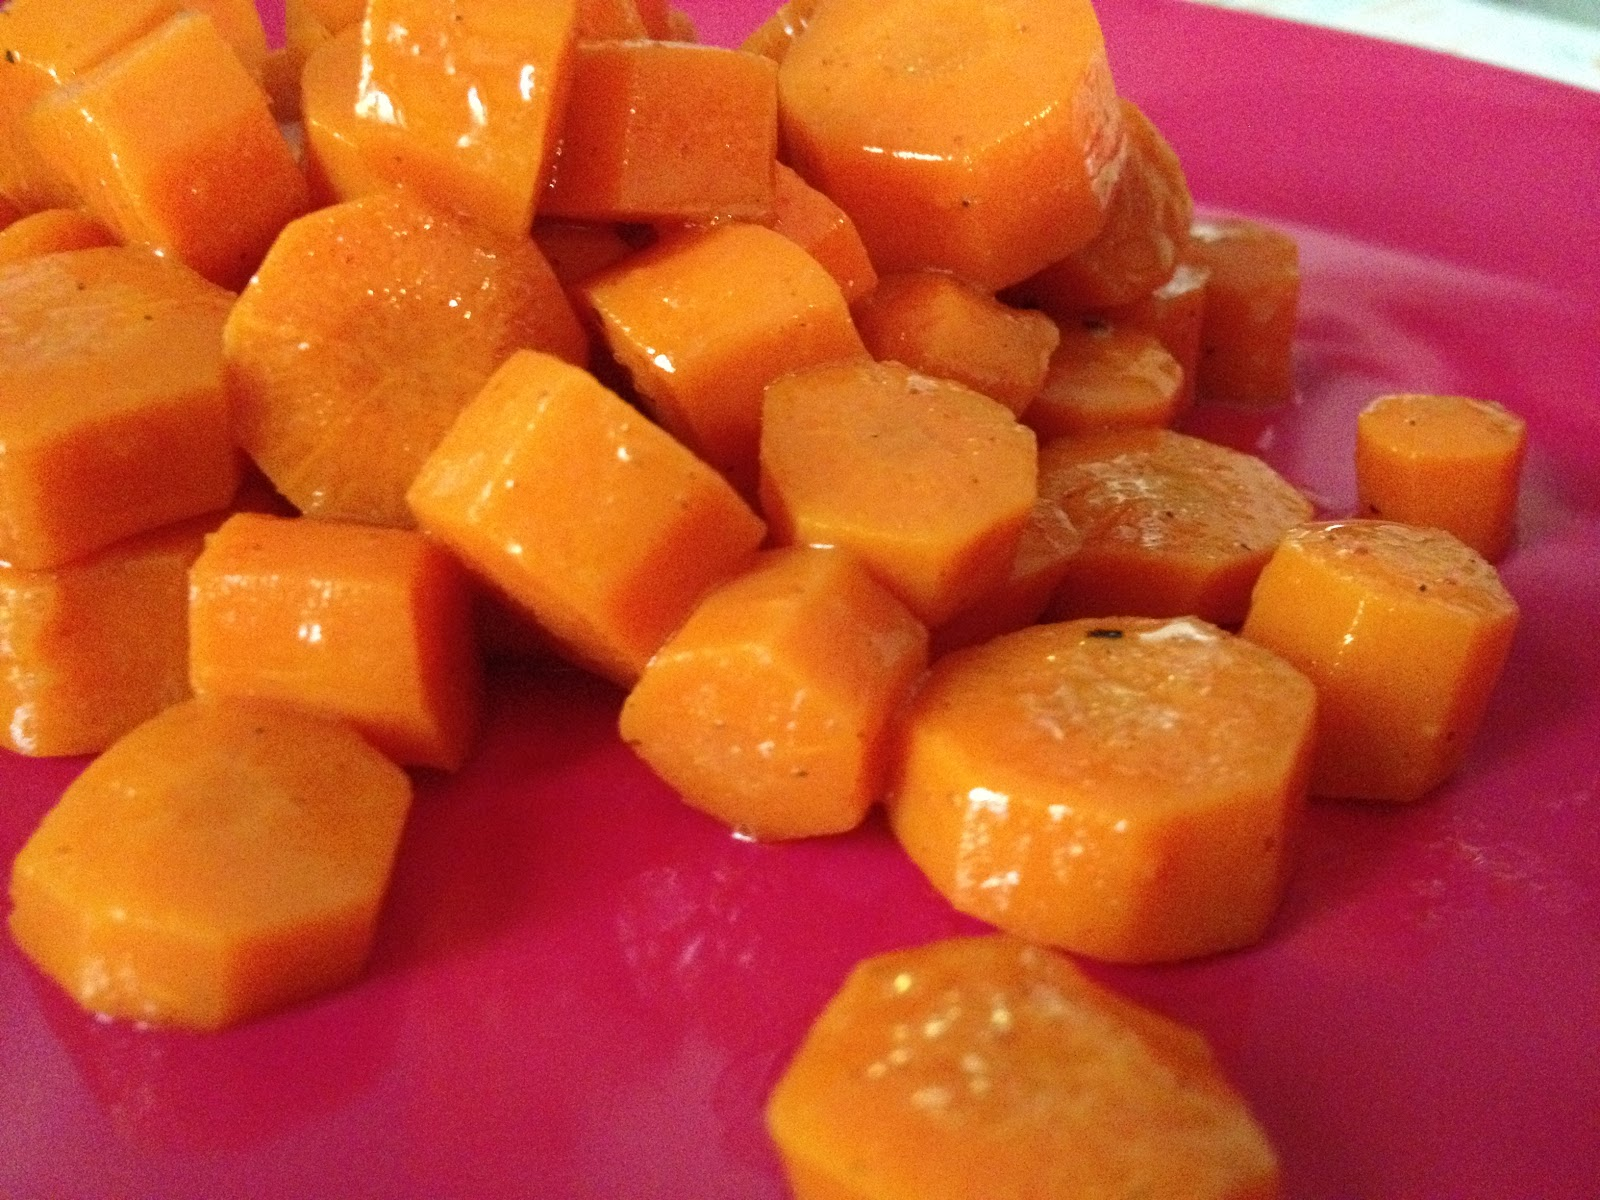 Bring some water to a boil in a medium pot. Add the carrots and boil ...